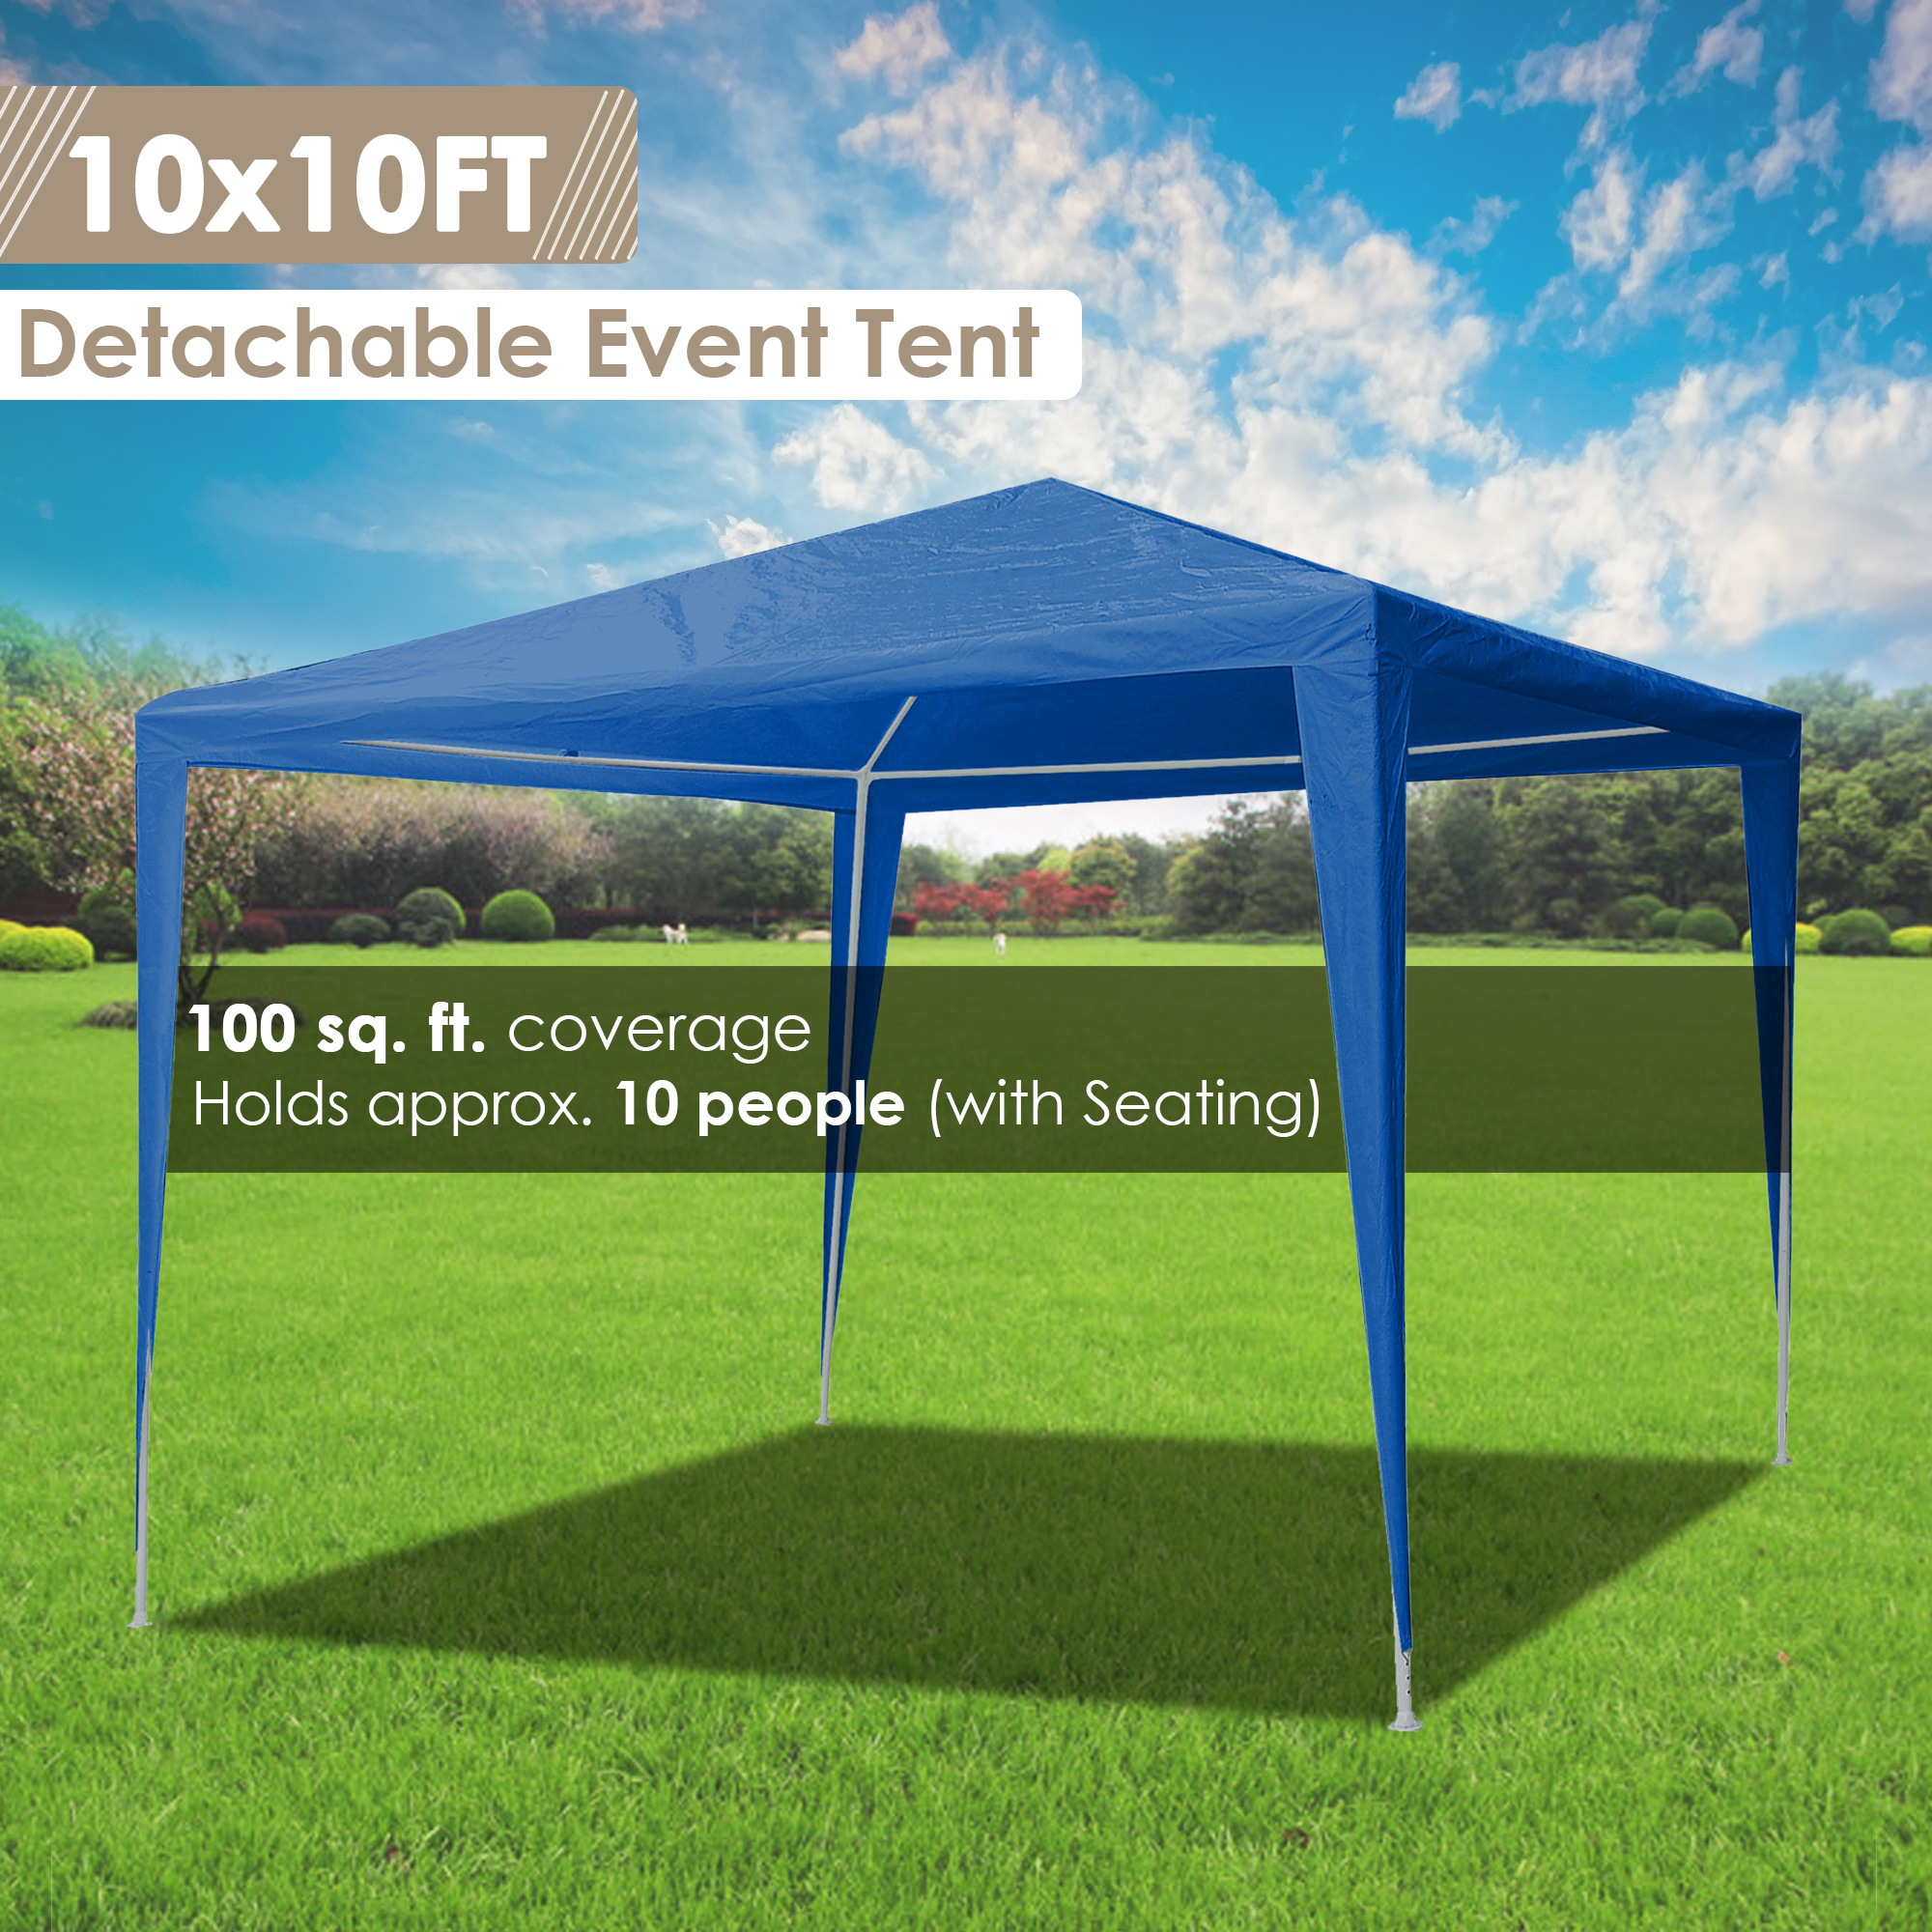 10-039-x10-039-Outdoor-Tent-Patio-Wedding-Canopy-Party-Marquee-Pavilion-w-4-Side-Walls thumbnail 3